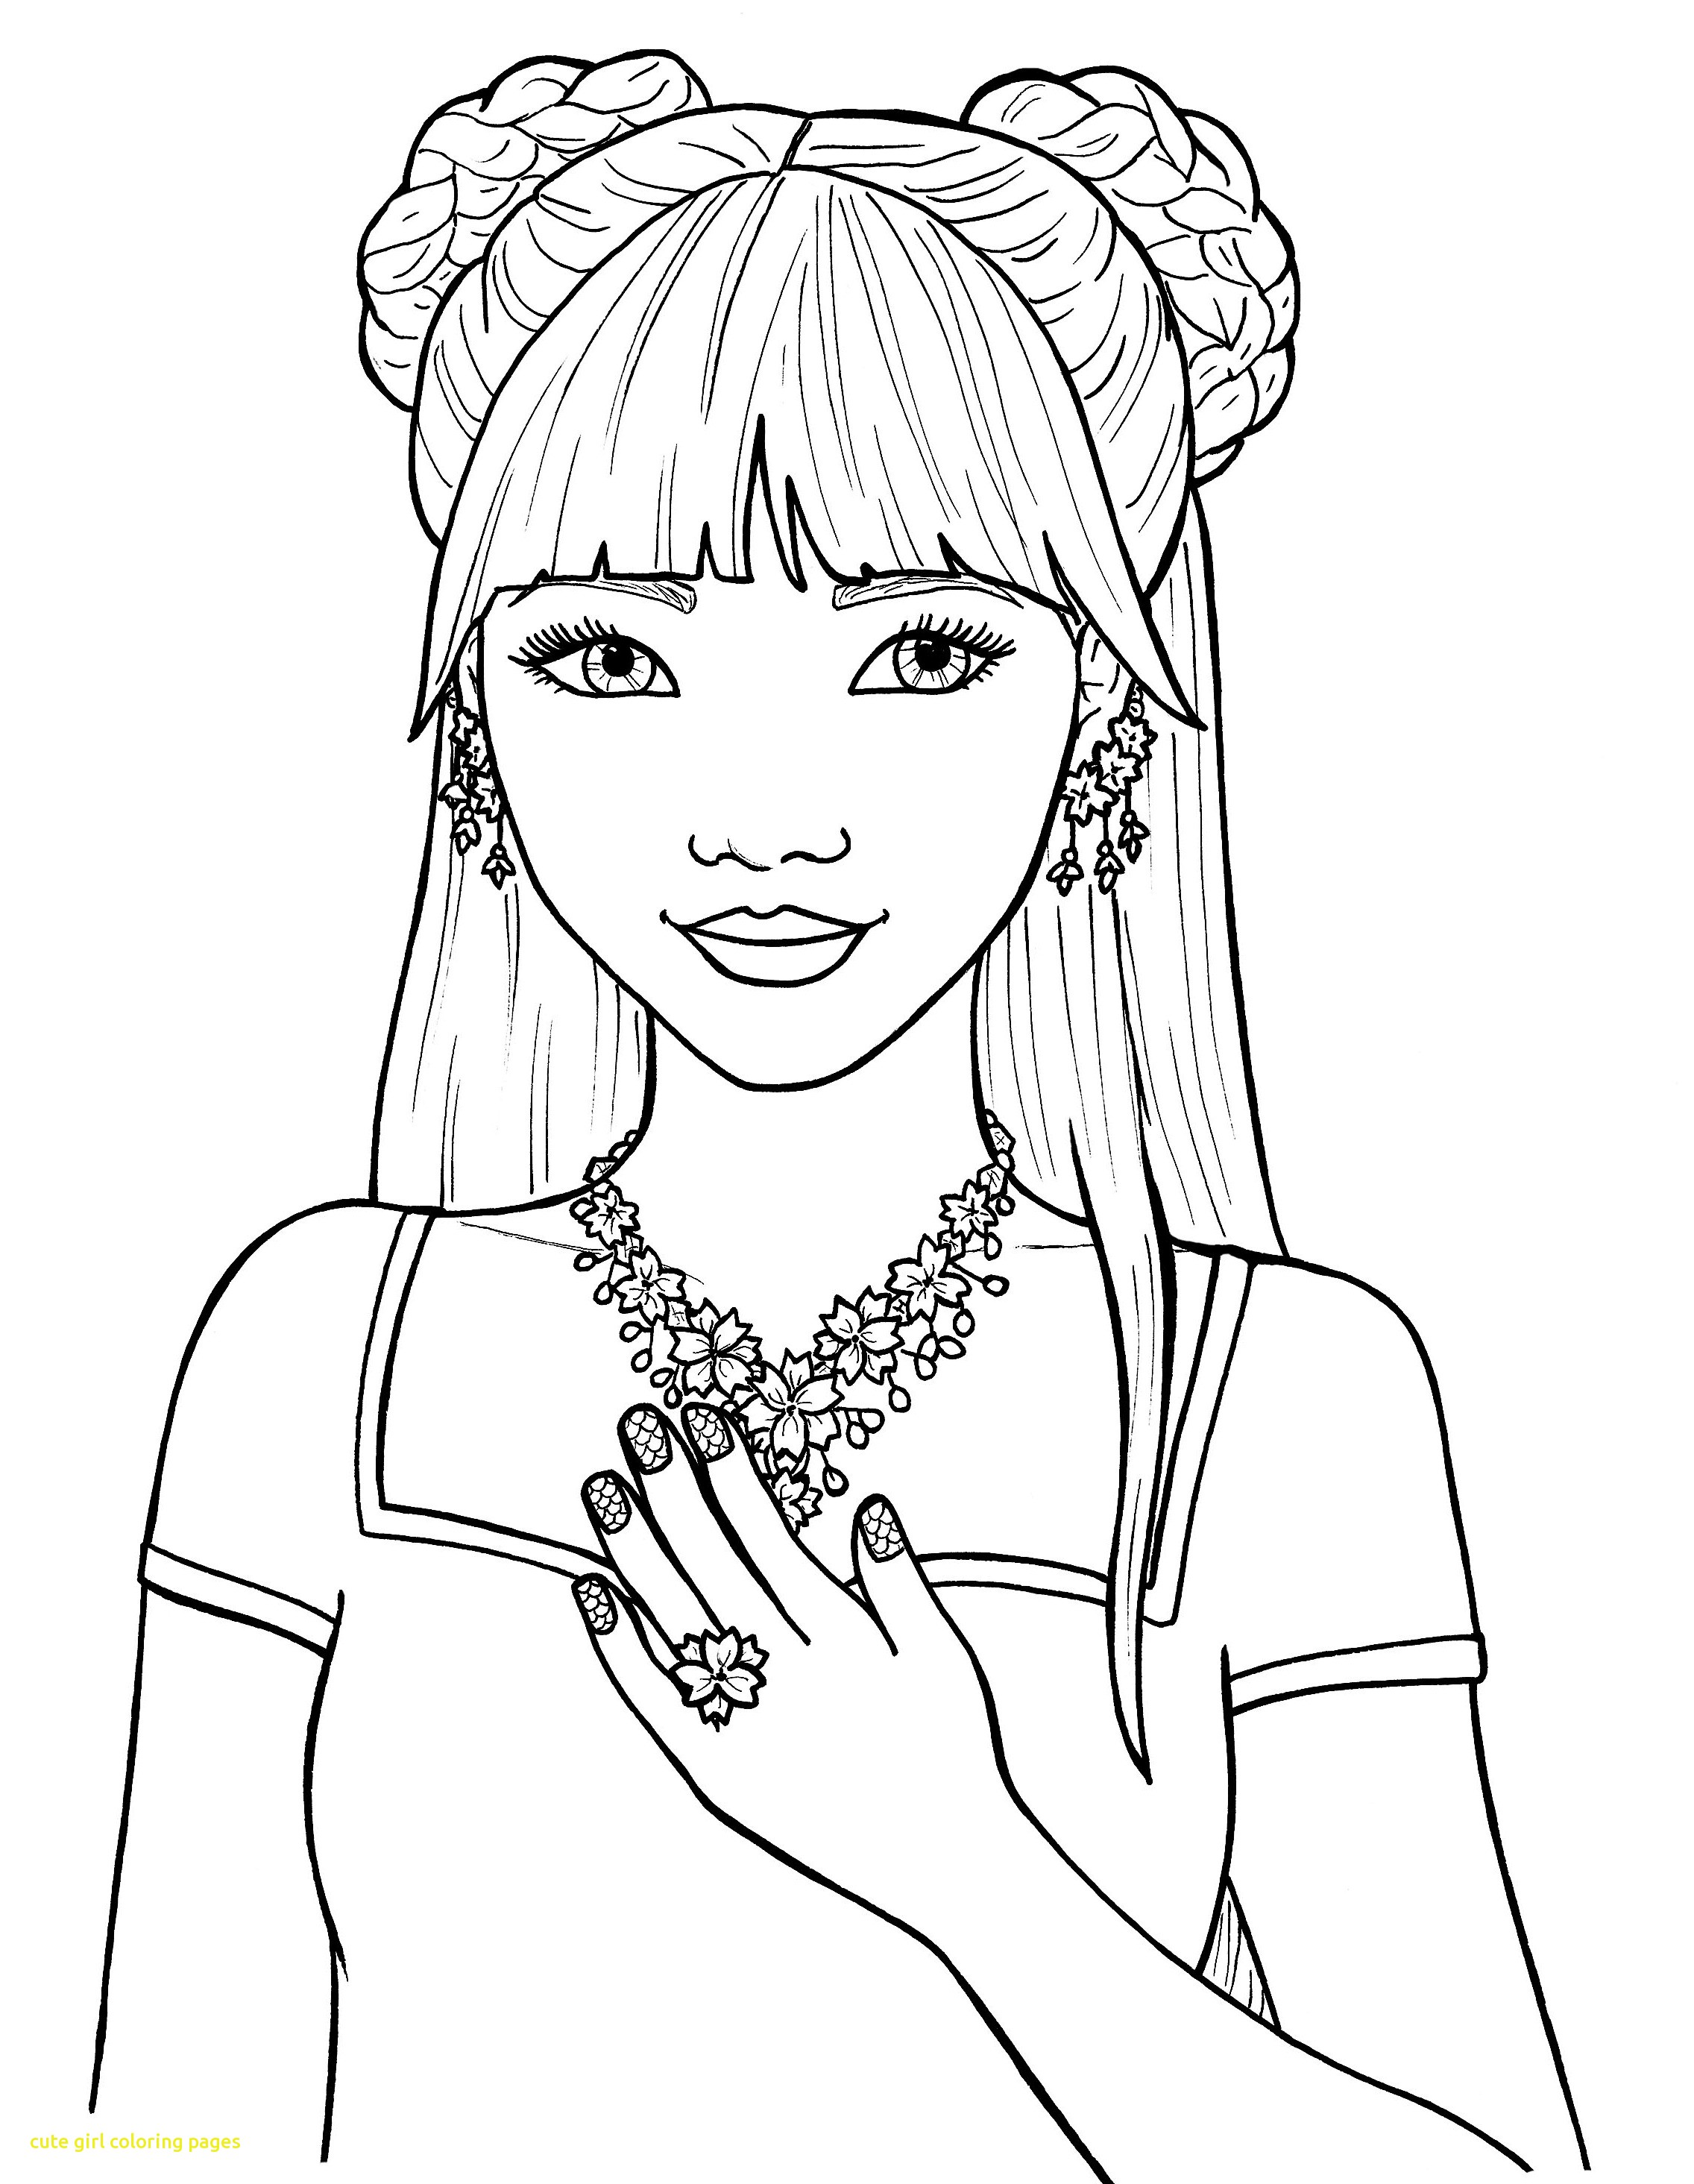 colouring pictures girls 8 anime girl coloring pages pdf jpg ai illustrator pictures colouring girls